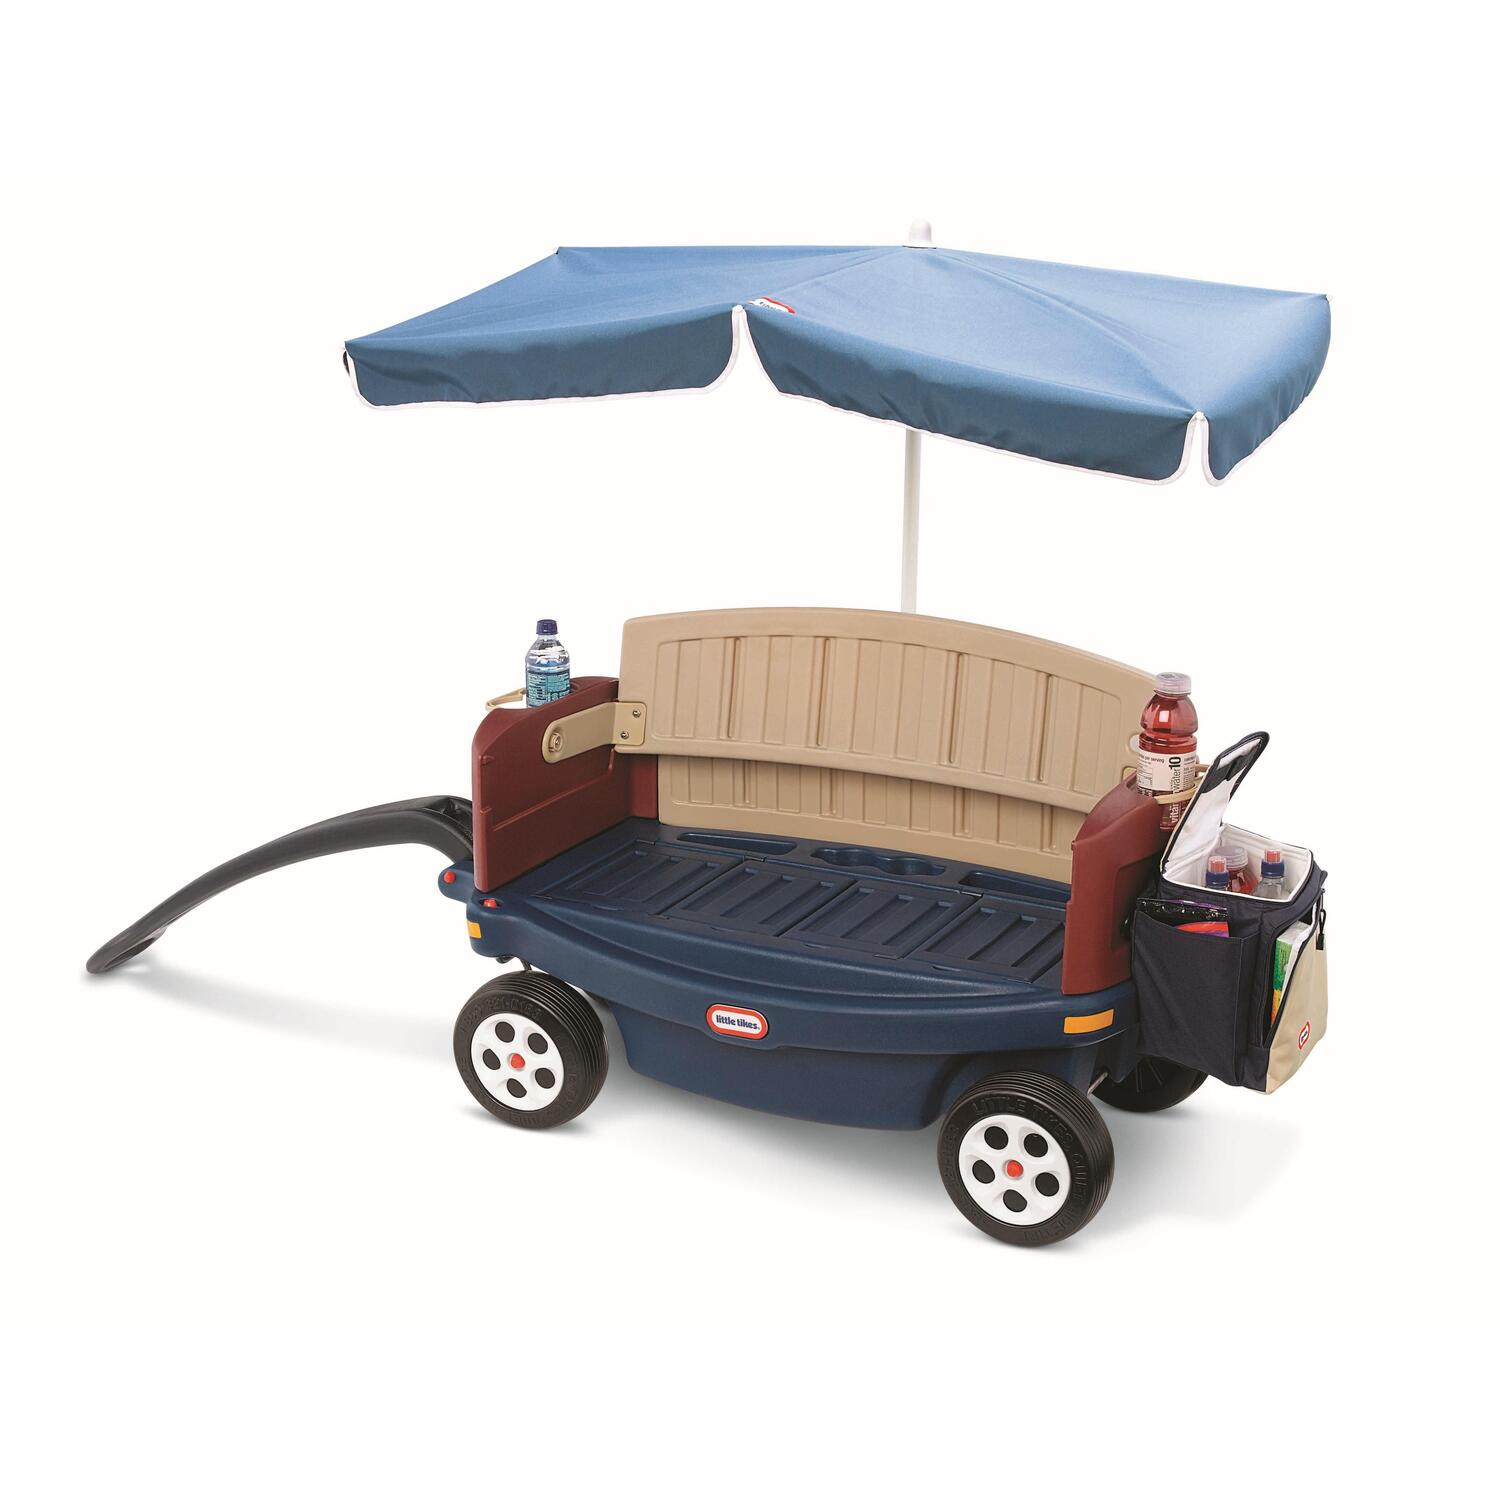 Brightly colored wagon, made of sturdy Step2 plastic that your family trusts for all of your kids' wagon adventures. x x inches, large and roomy for holding kids or holding stuff! A LARGE, soft removable Igloo cooler that nestles right inside the wagon.